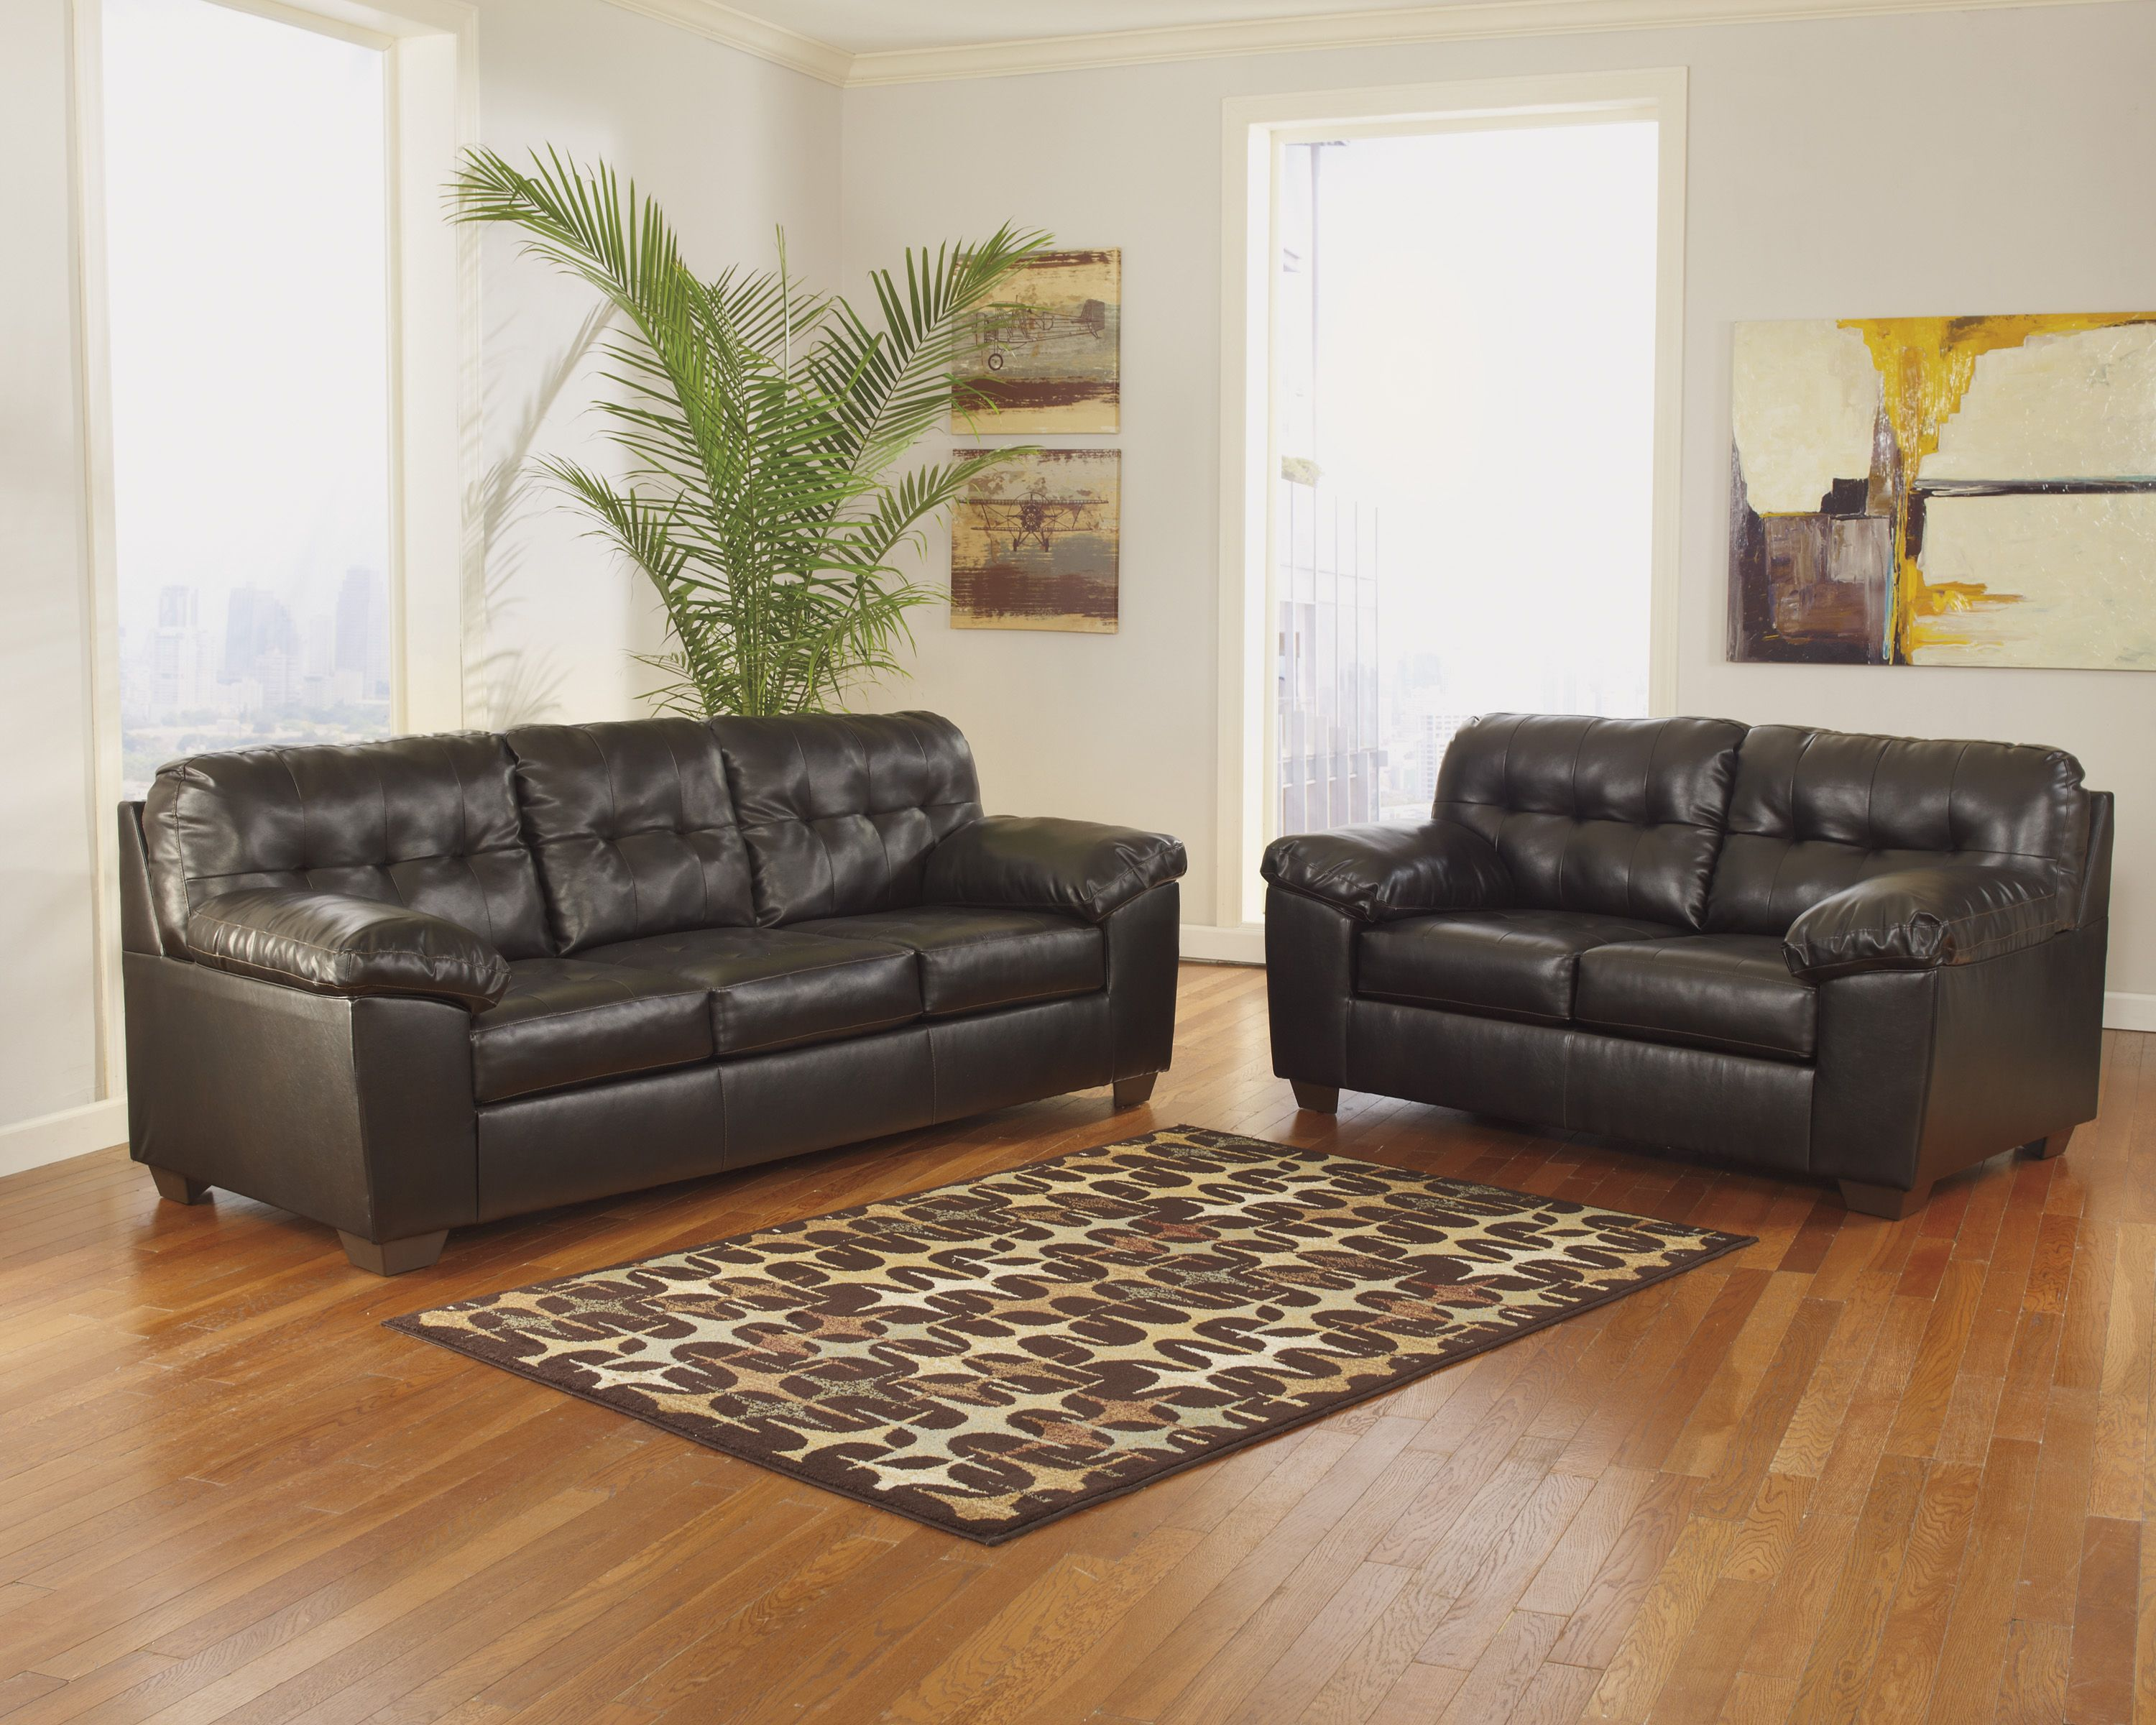 cool Leather Couch Ashley Furniture Elegant Leather Couch Ashley